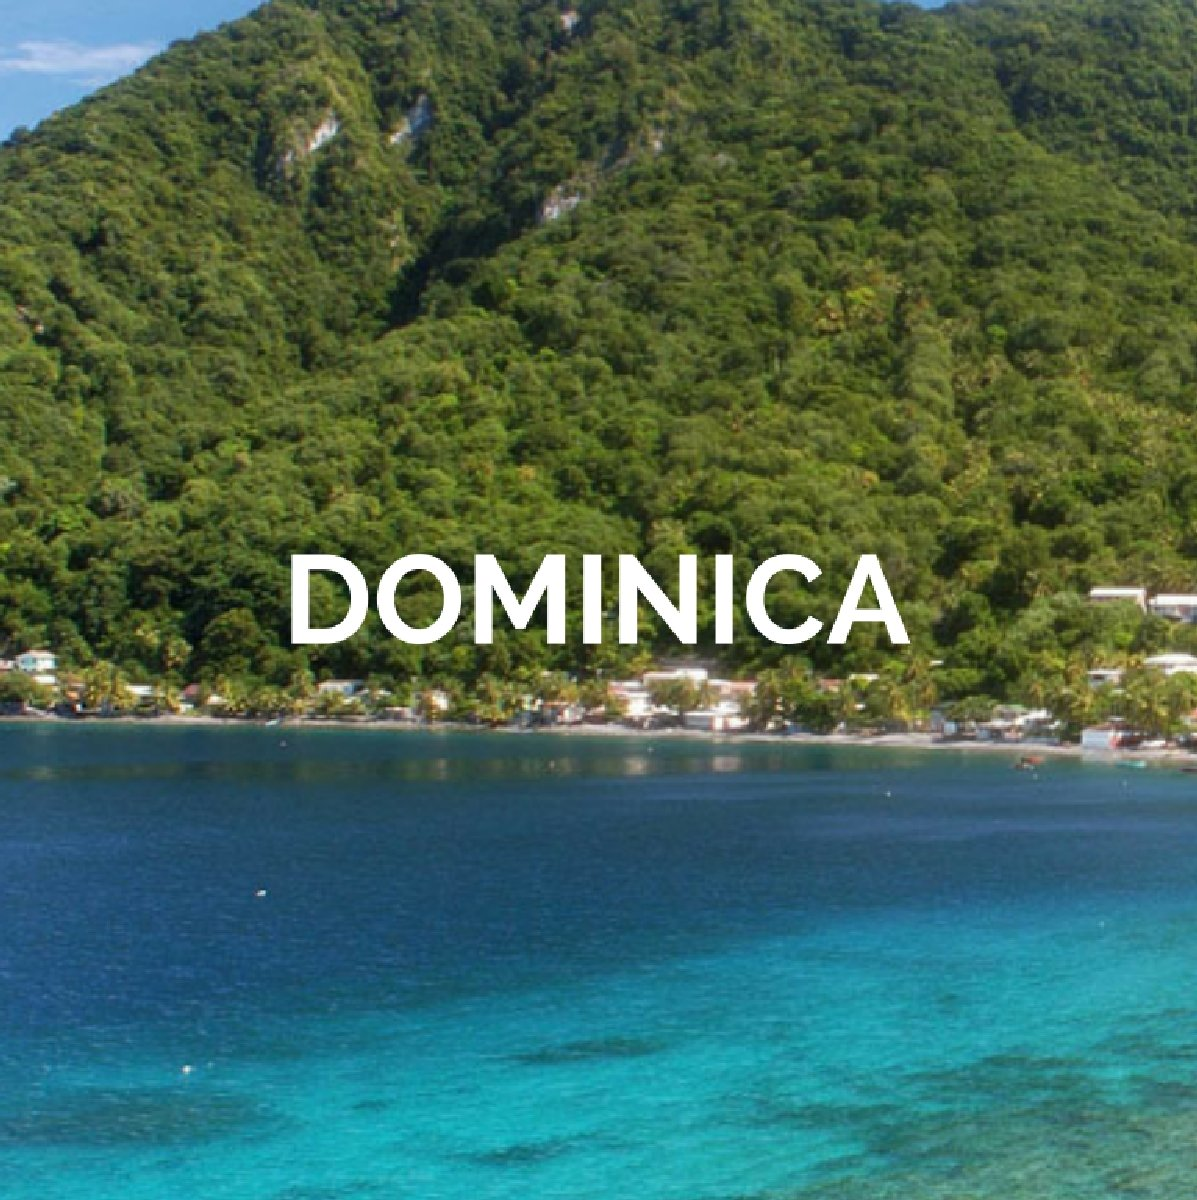 dominica-windward-islands-yacht-charter